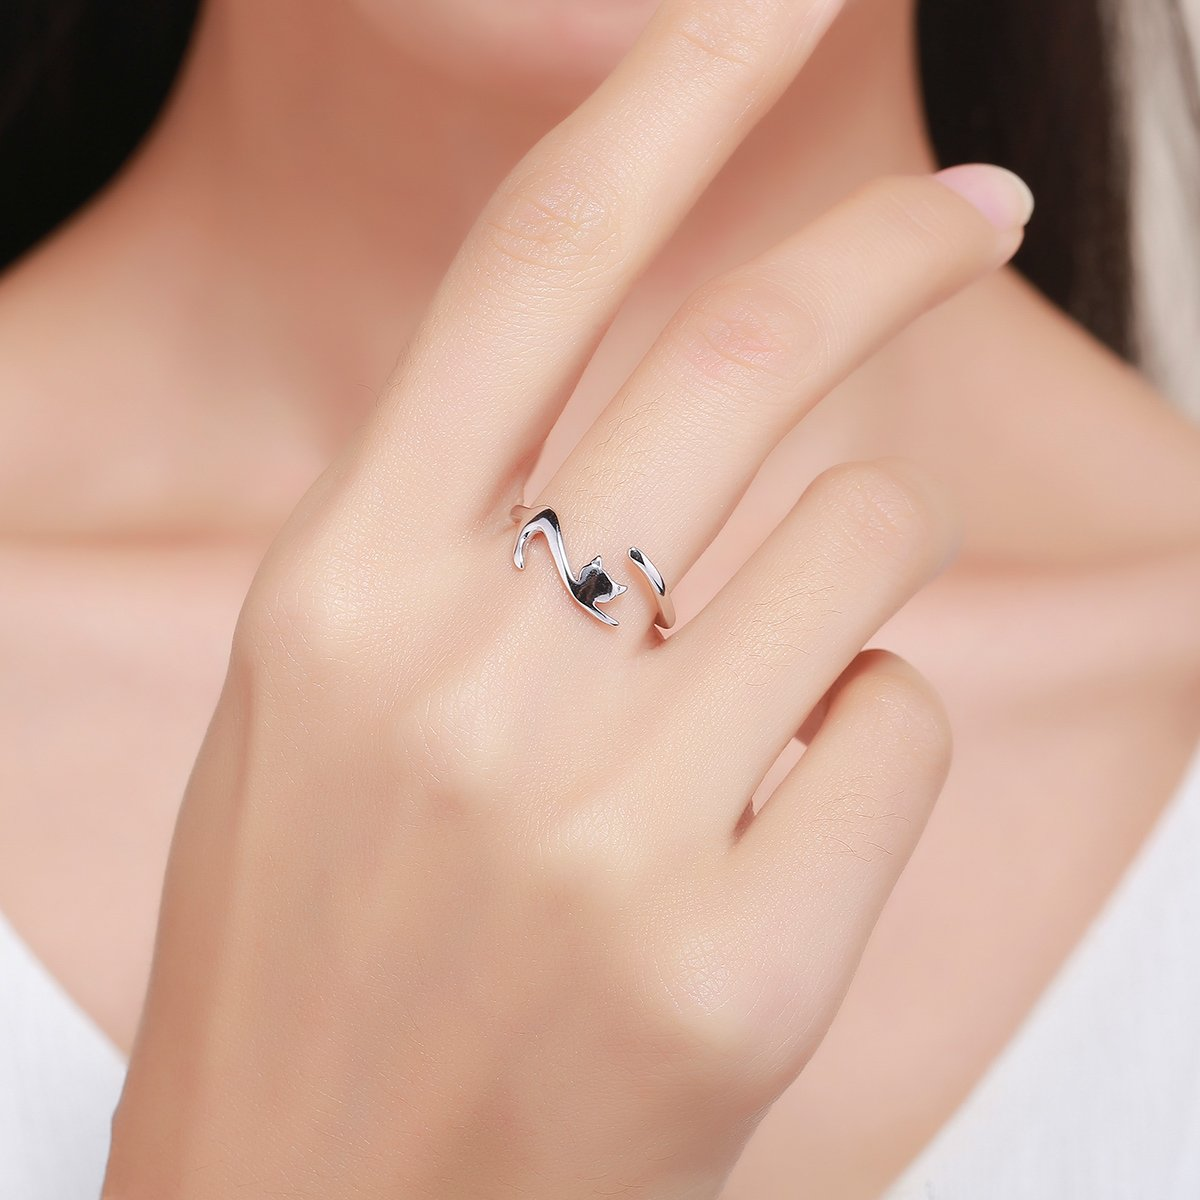 Everbling Playful Cat with Long Tail 925 Sterling Silver Adjustable Ring